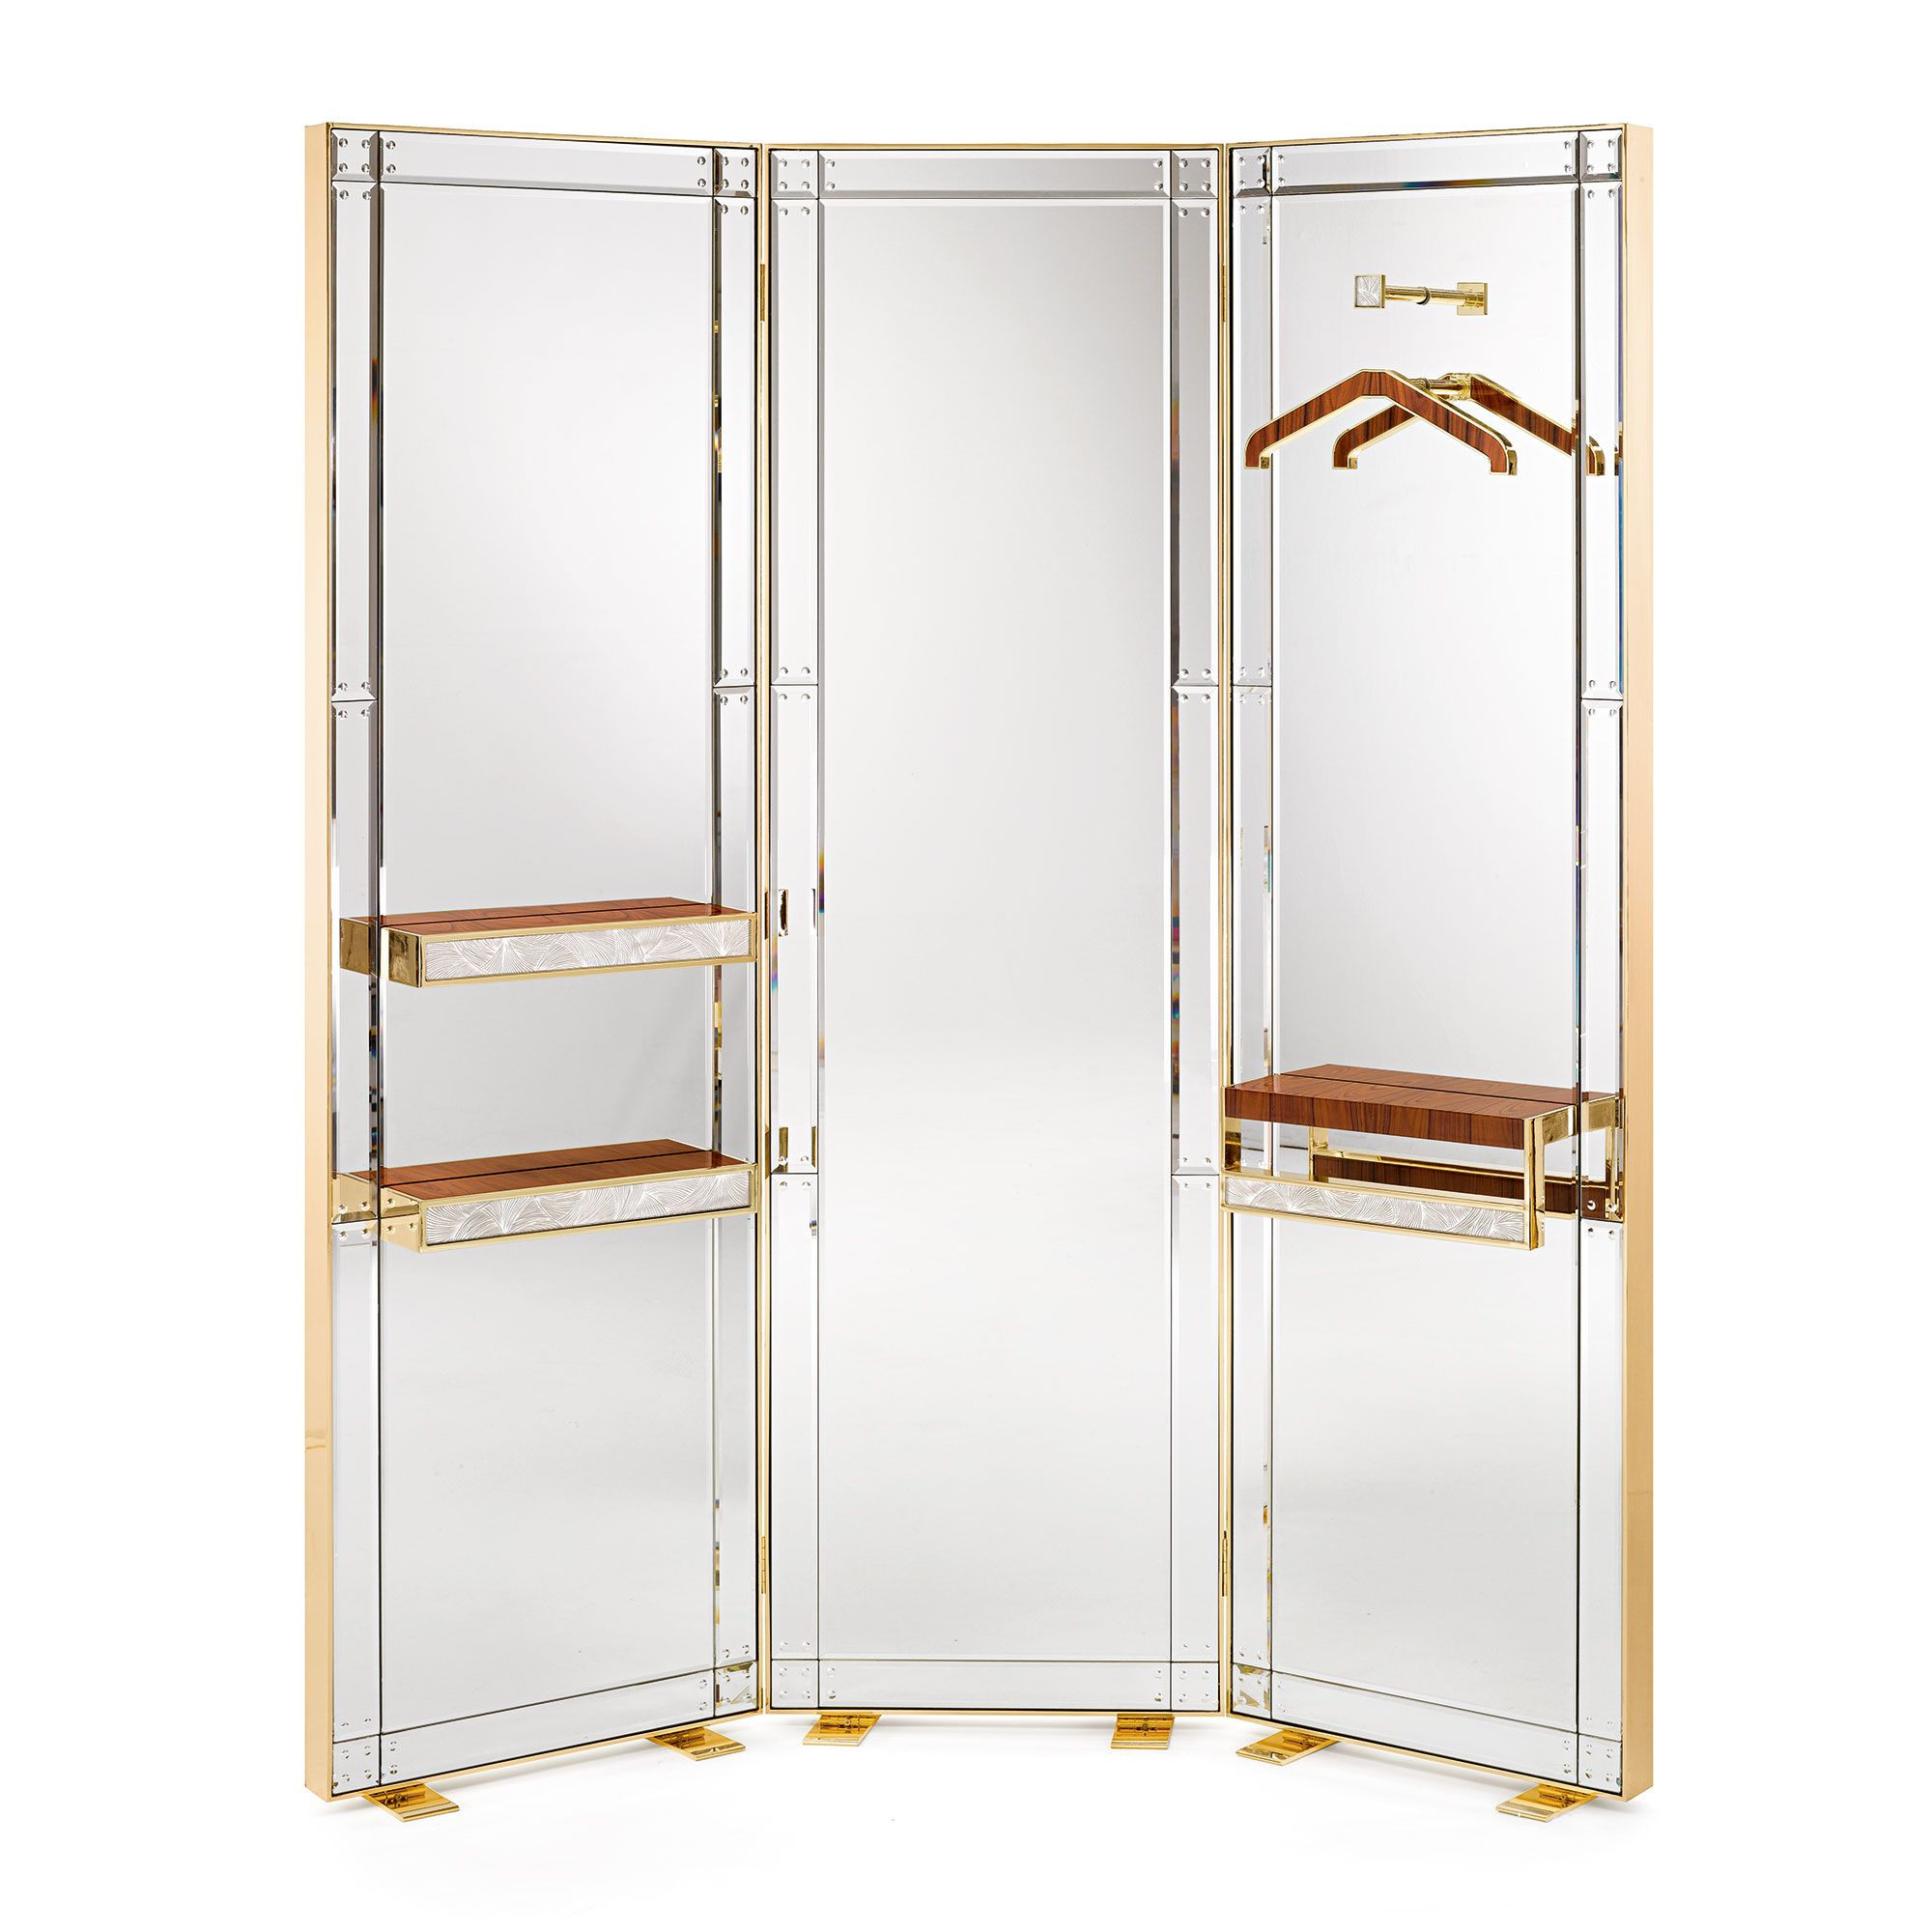 forziere wooden and mirrored screen  contemporary art deco mid  - forziere wooden and mirrored screen  contemporary art deco midcentury  modernfolding screens